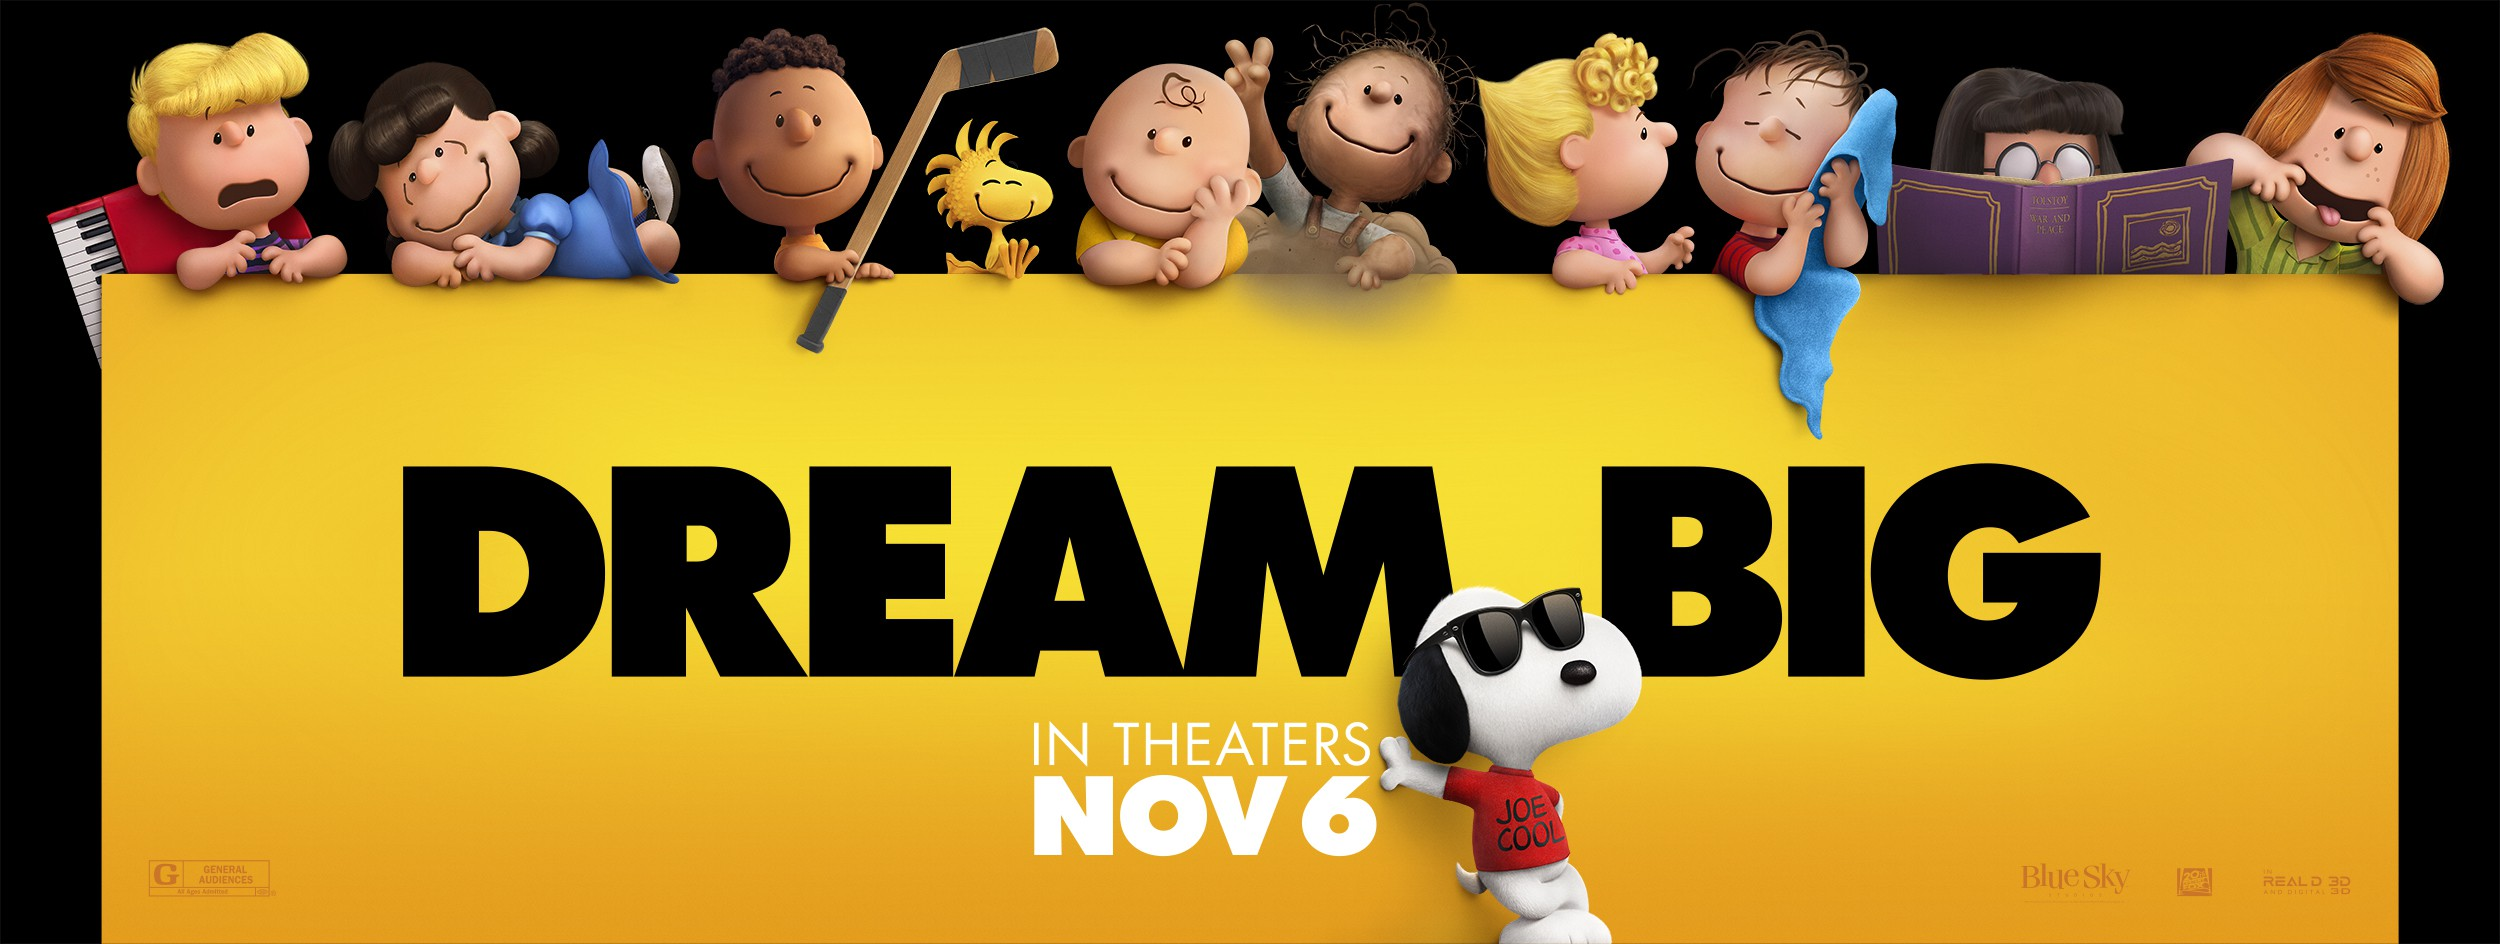 The Peanuts Movie-30Outubro2015 (1)